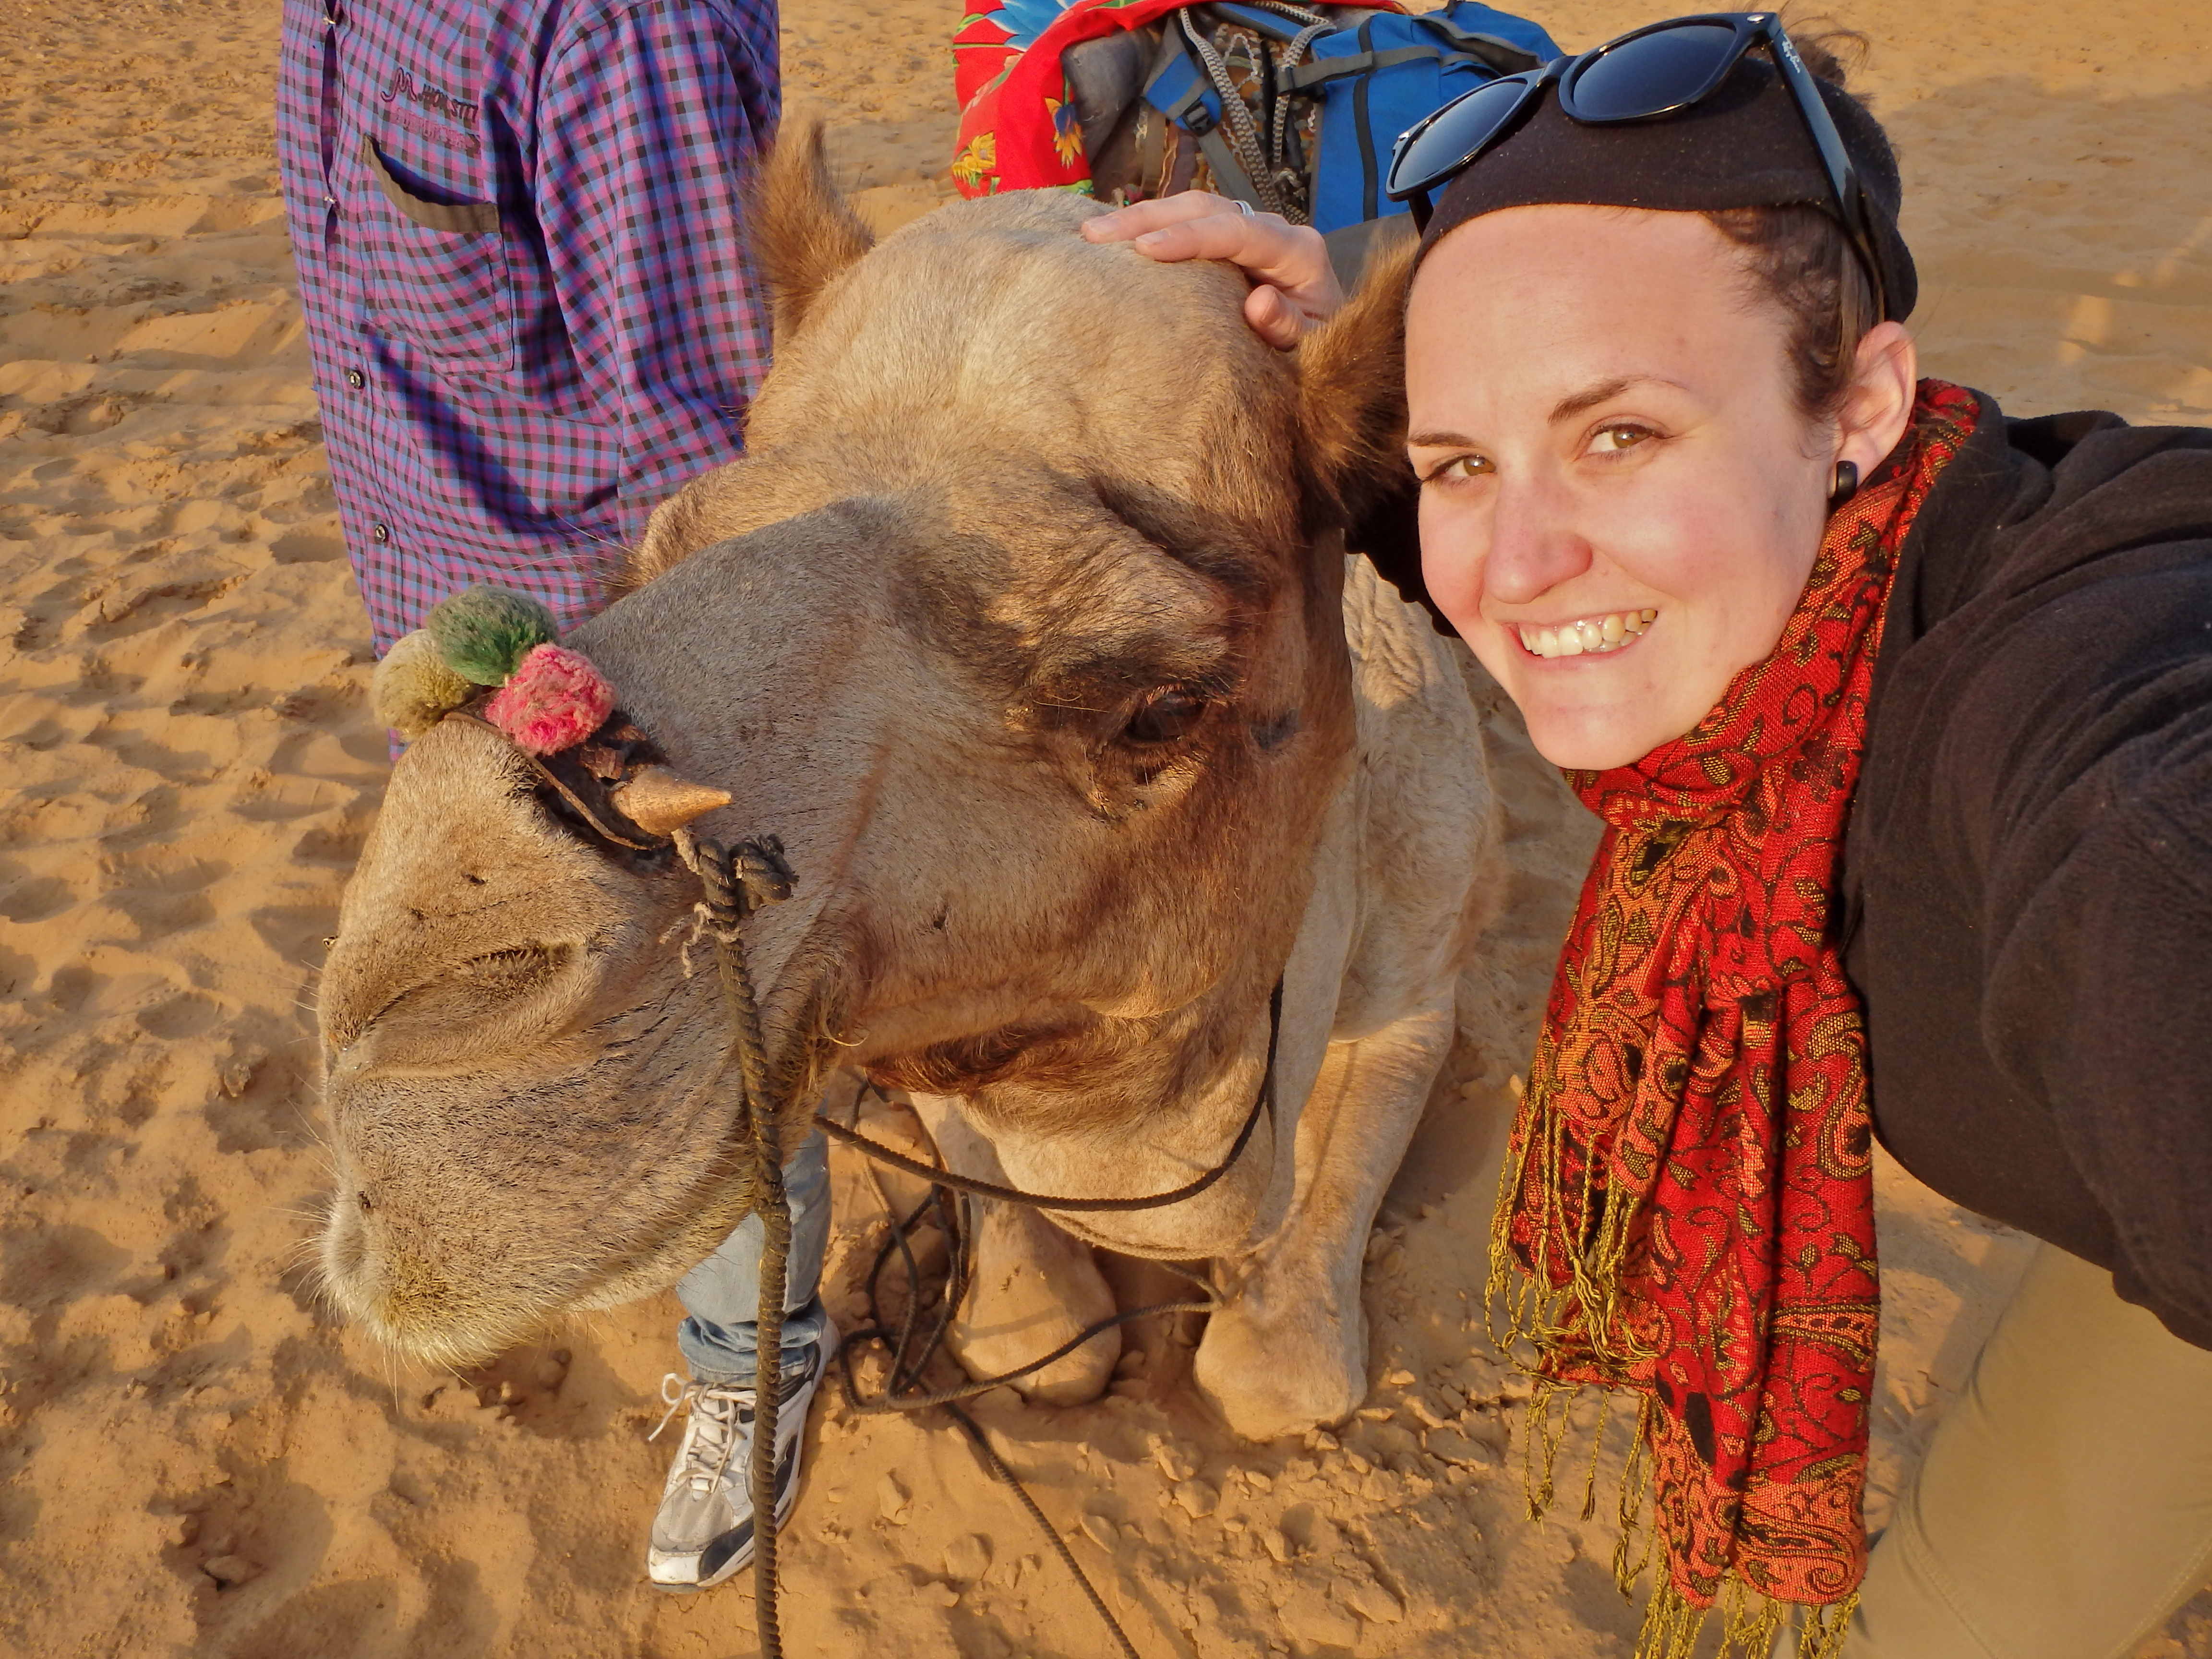 riding a camel in india travel blog how to ride a camel where can I ride a camel